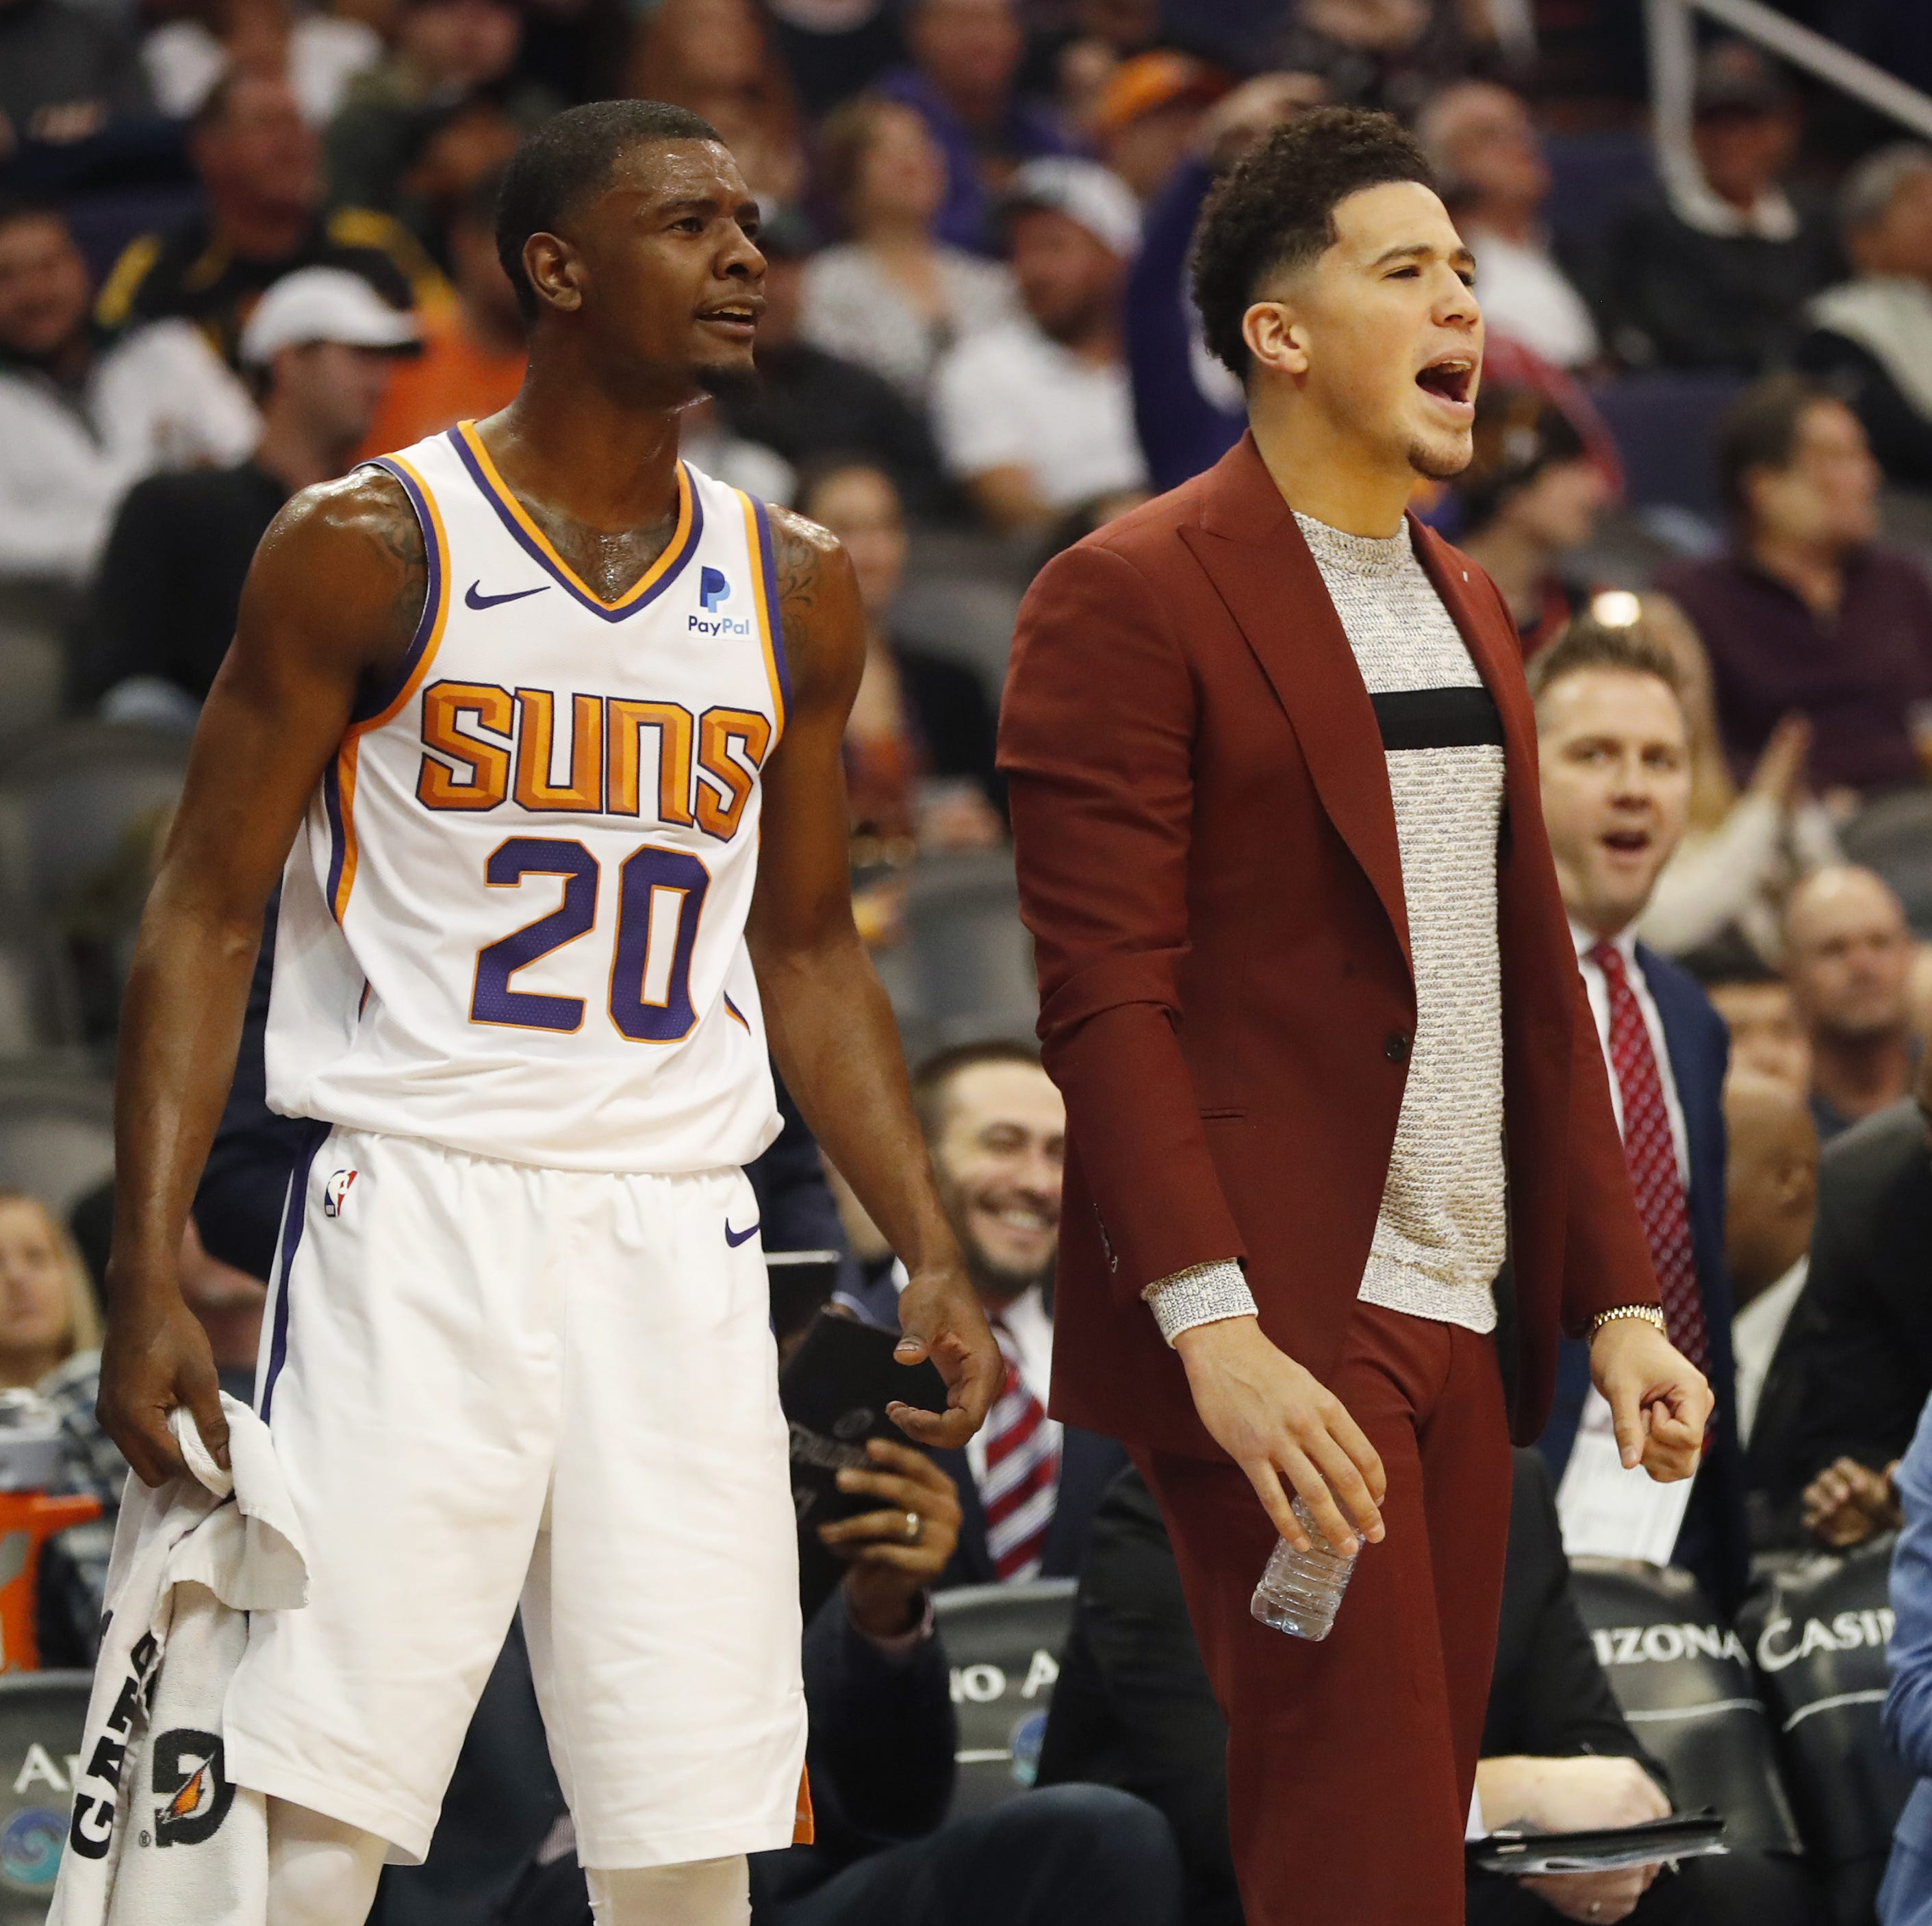 Kokoskov: Suns star Devin Booker will play, start tonight against Minnesota Timberwolves